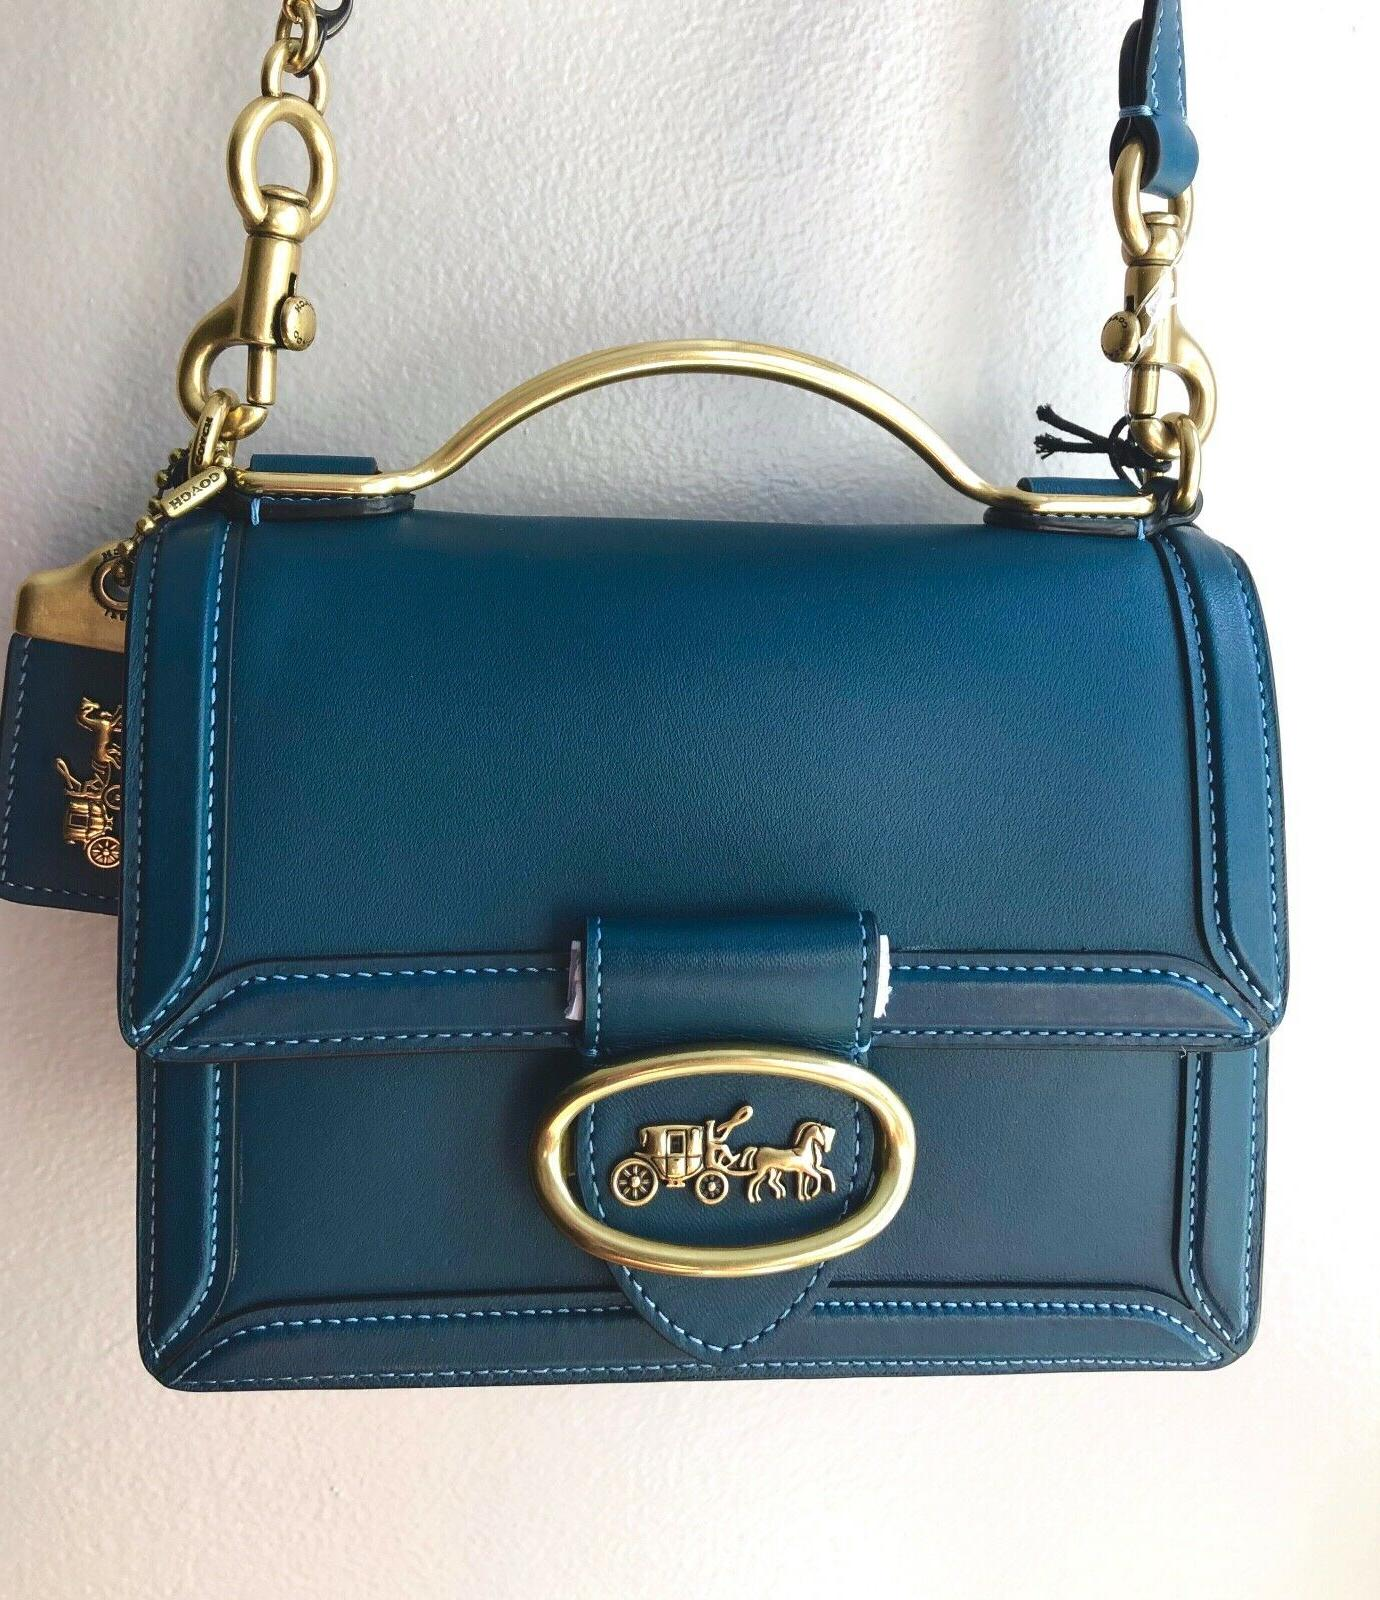 Sold Out 1941 Peacock Leather Riley 18 Top Handle Crossbody Bag